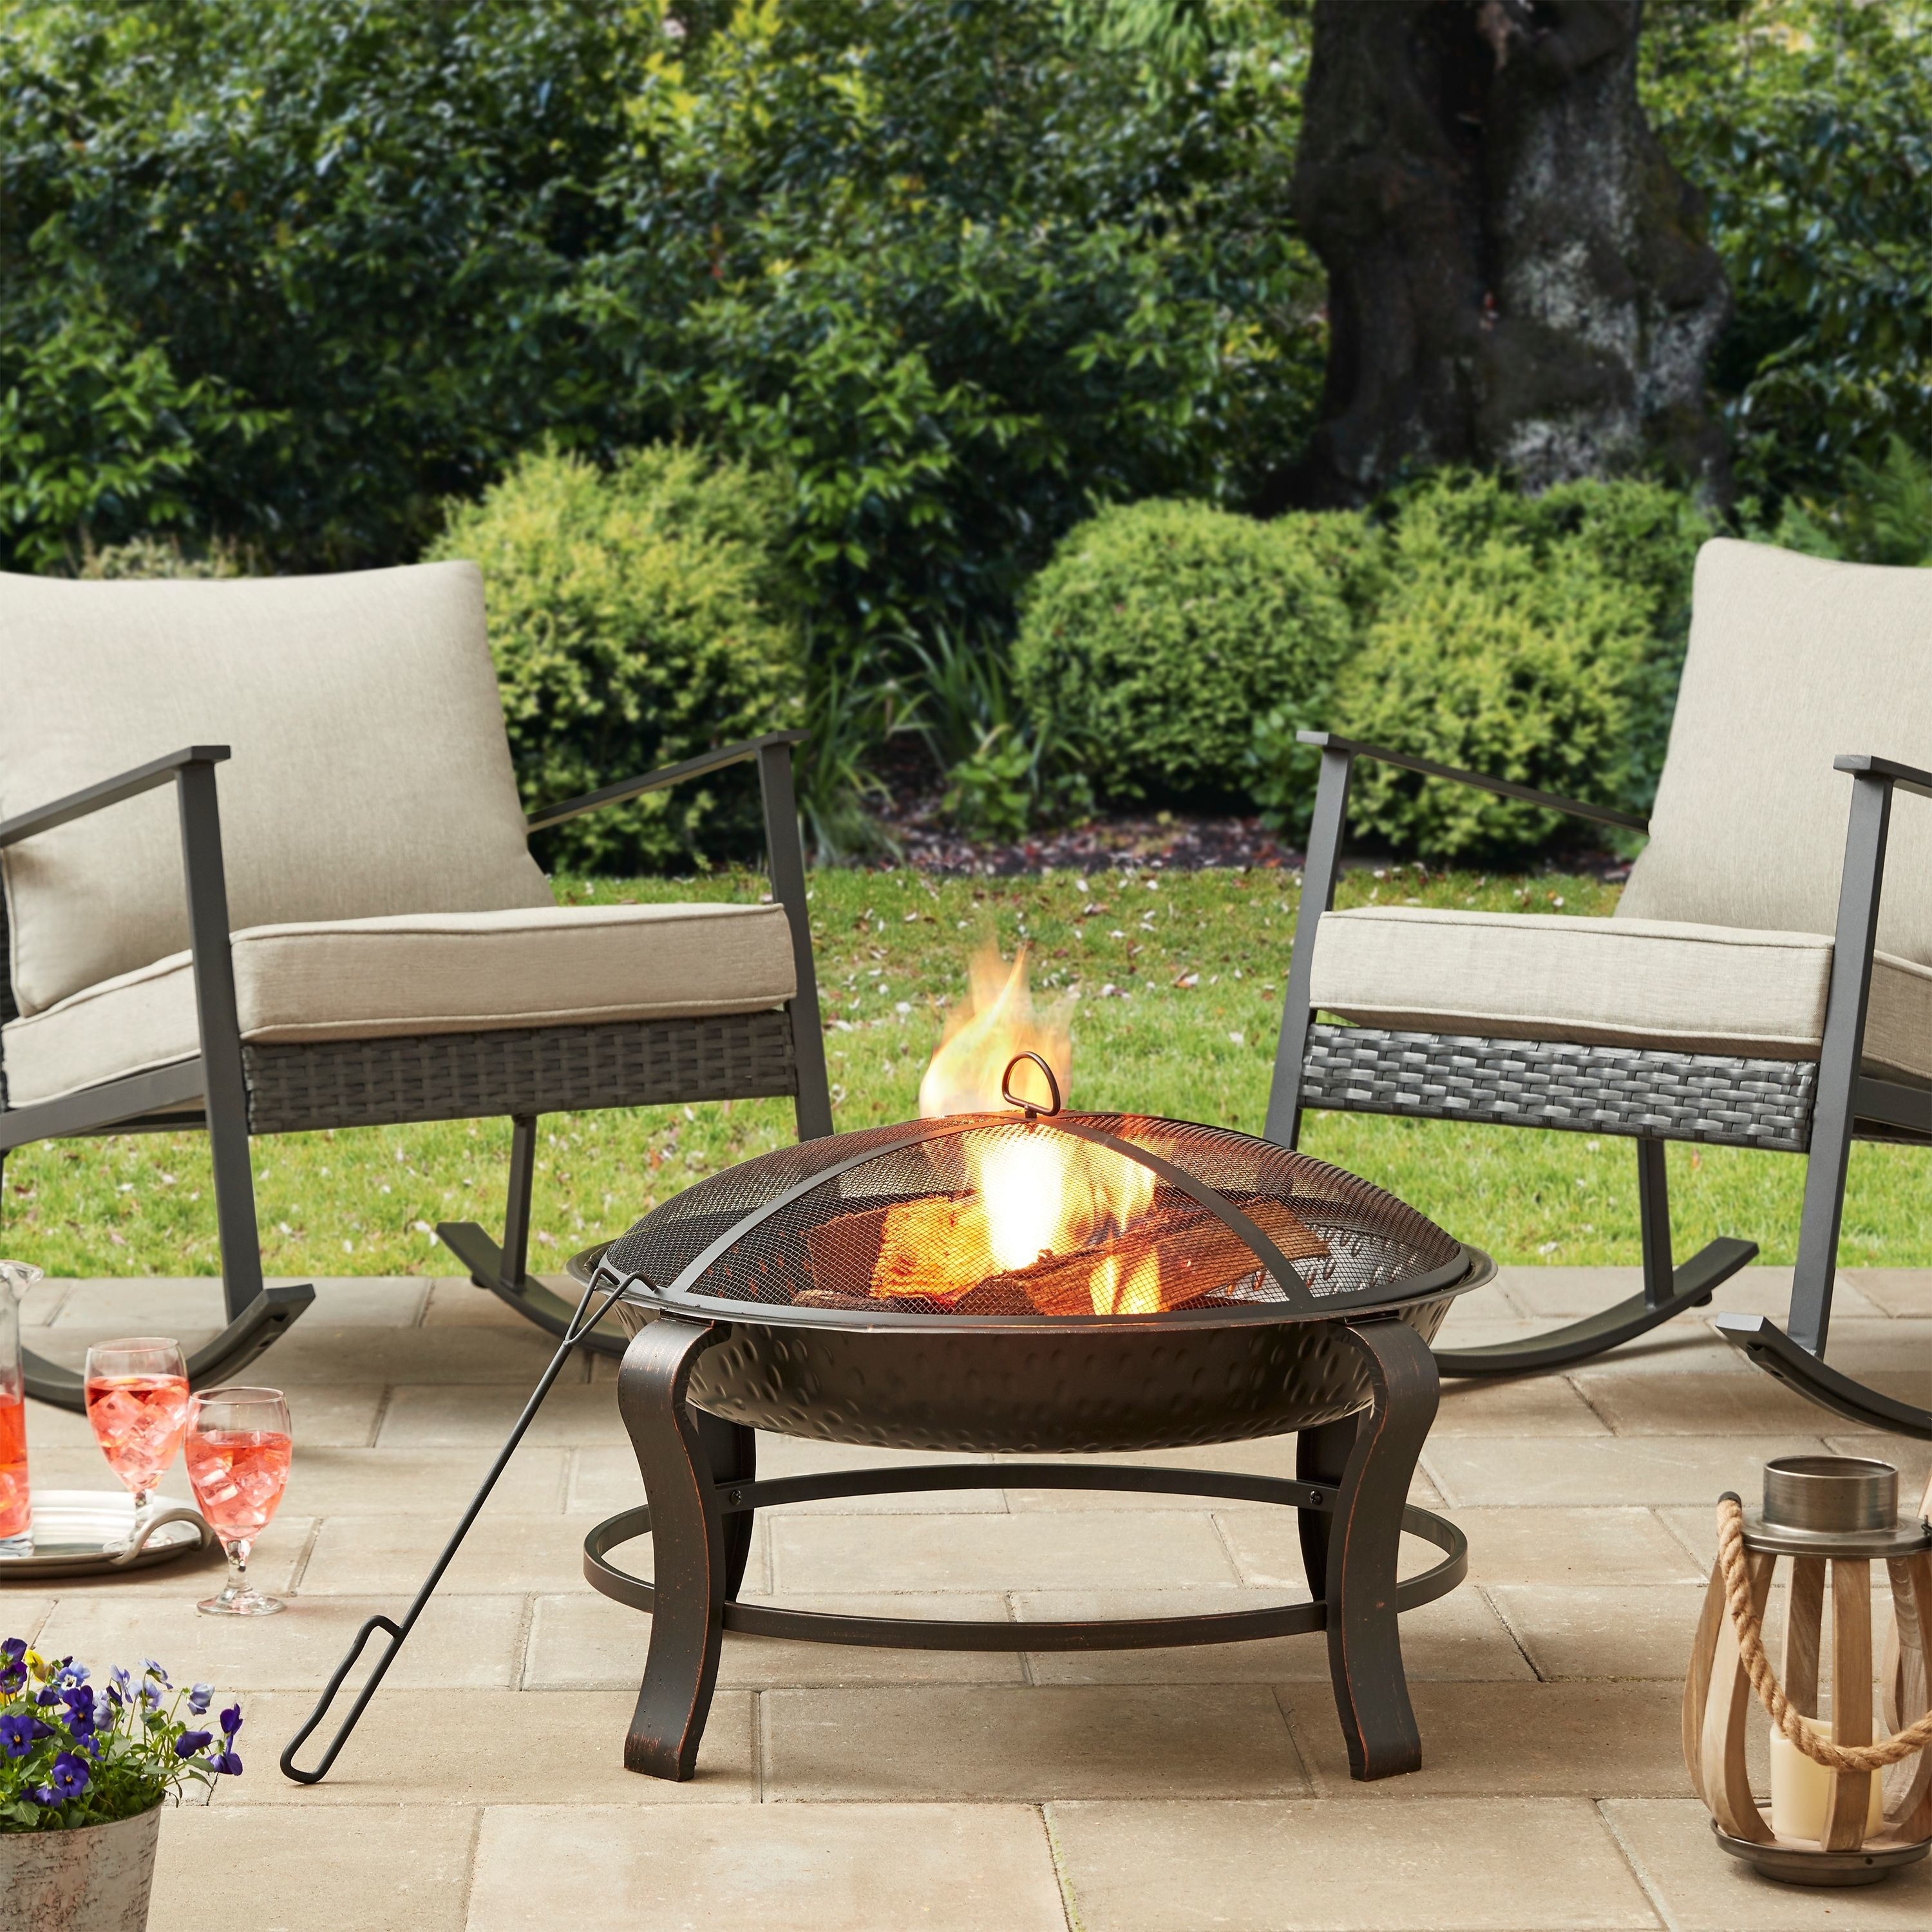 Blazing fire in a bronze frame firepit with poker and mesh cover